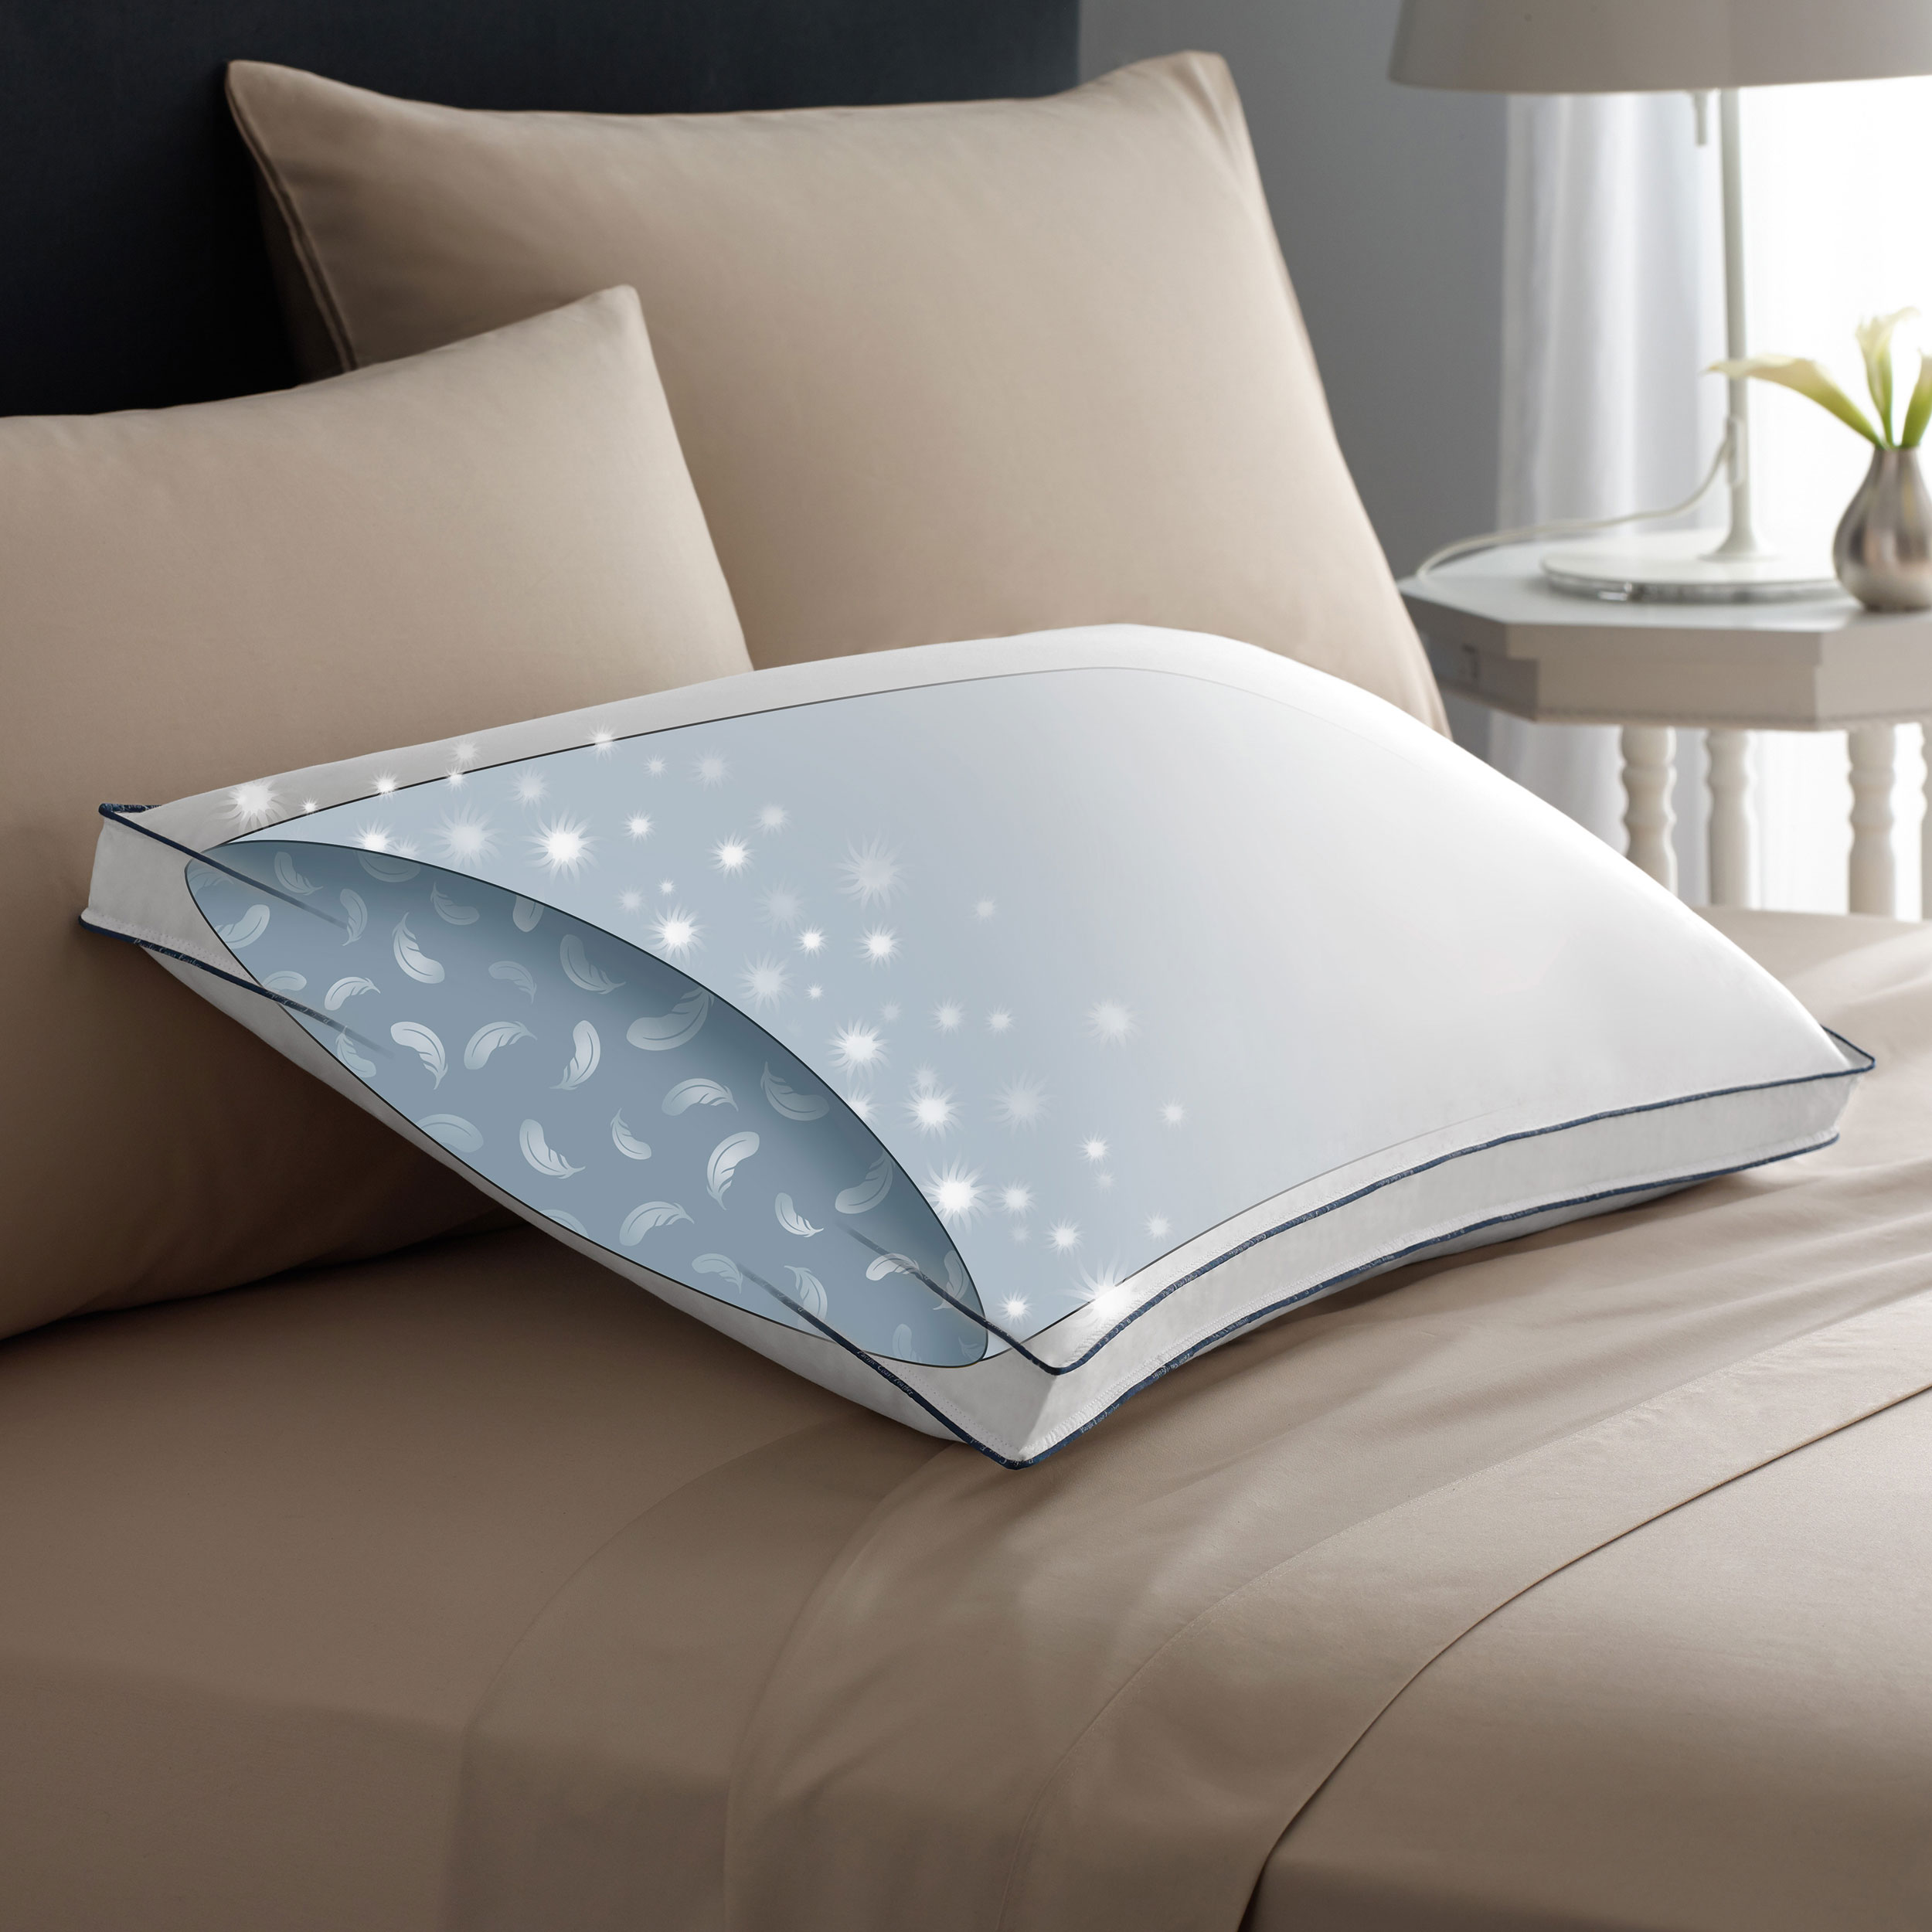 Pacific Coast® Online Bedding Stores Pillows